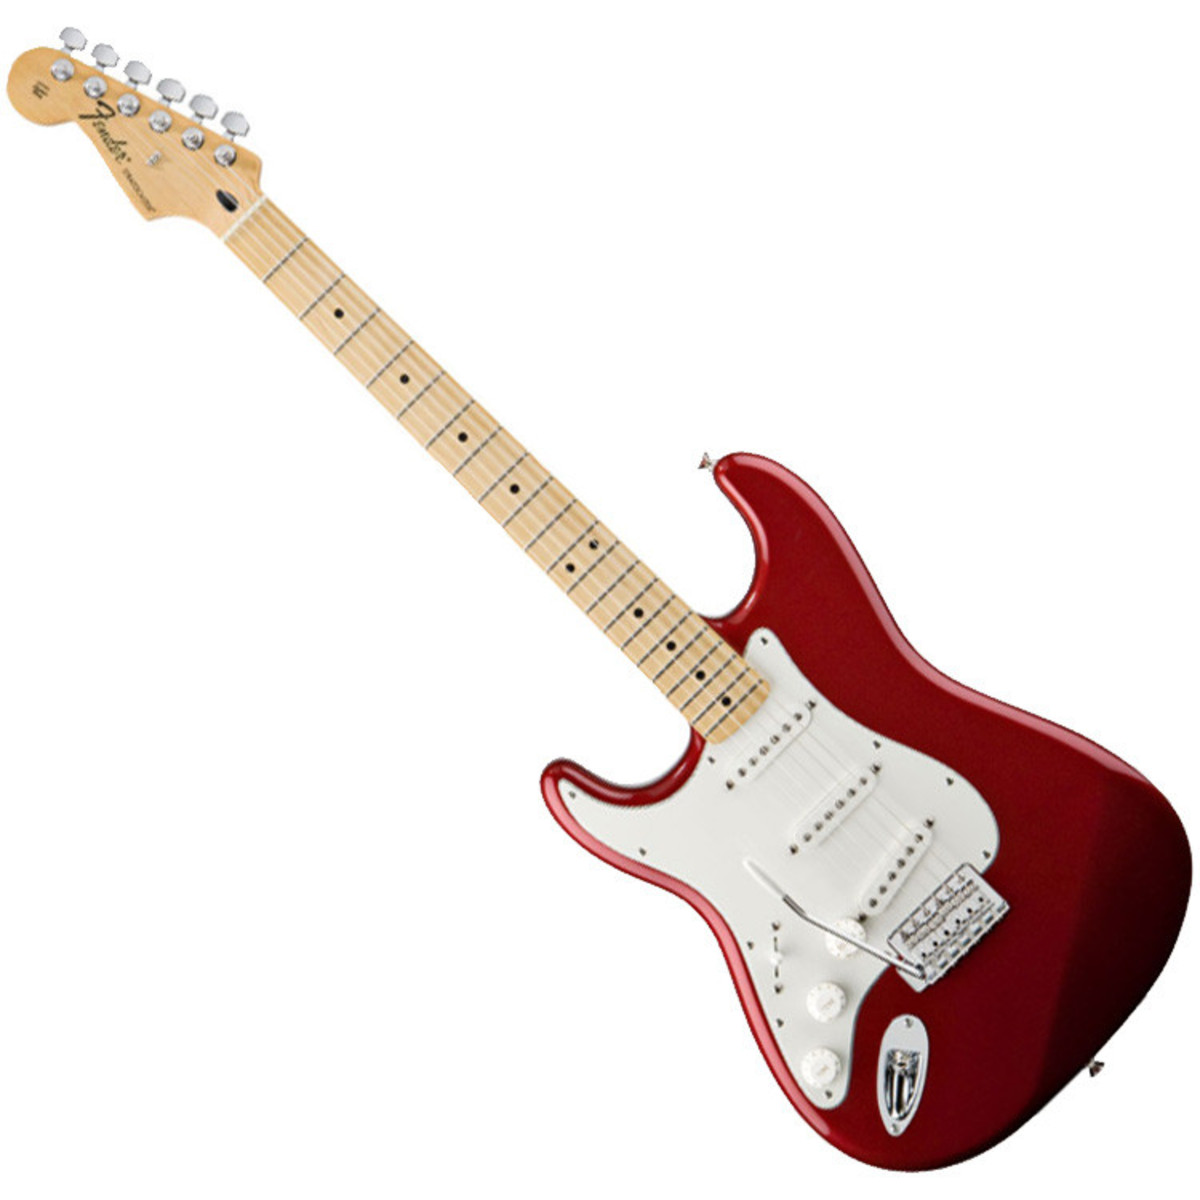 disc fender standard stratocaster lh electric guitar mn c apple red at gear4music. Black Bedroom Furniture Sets. Home Design Ideas